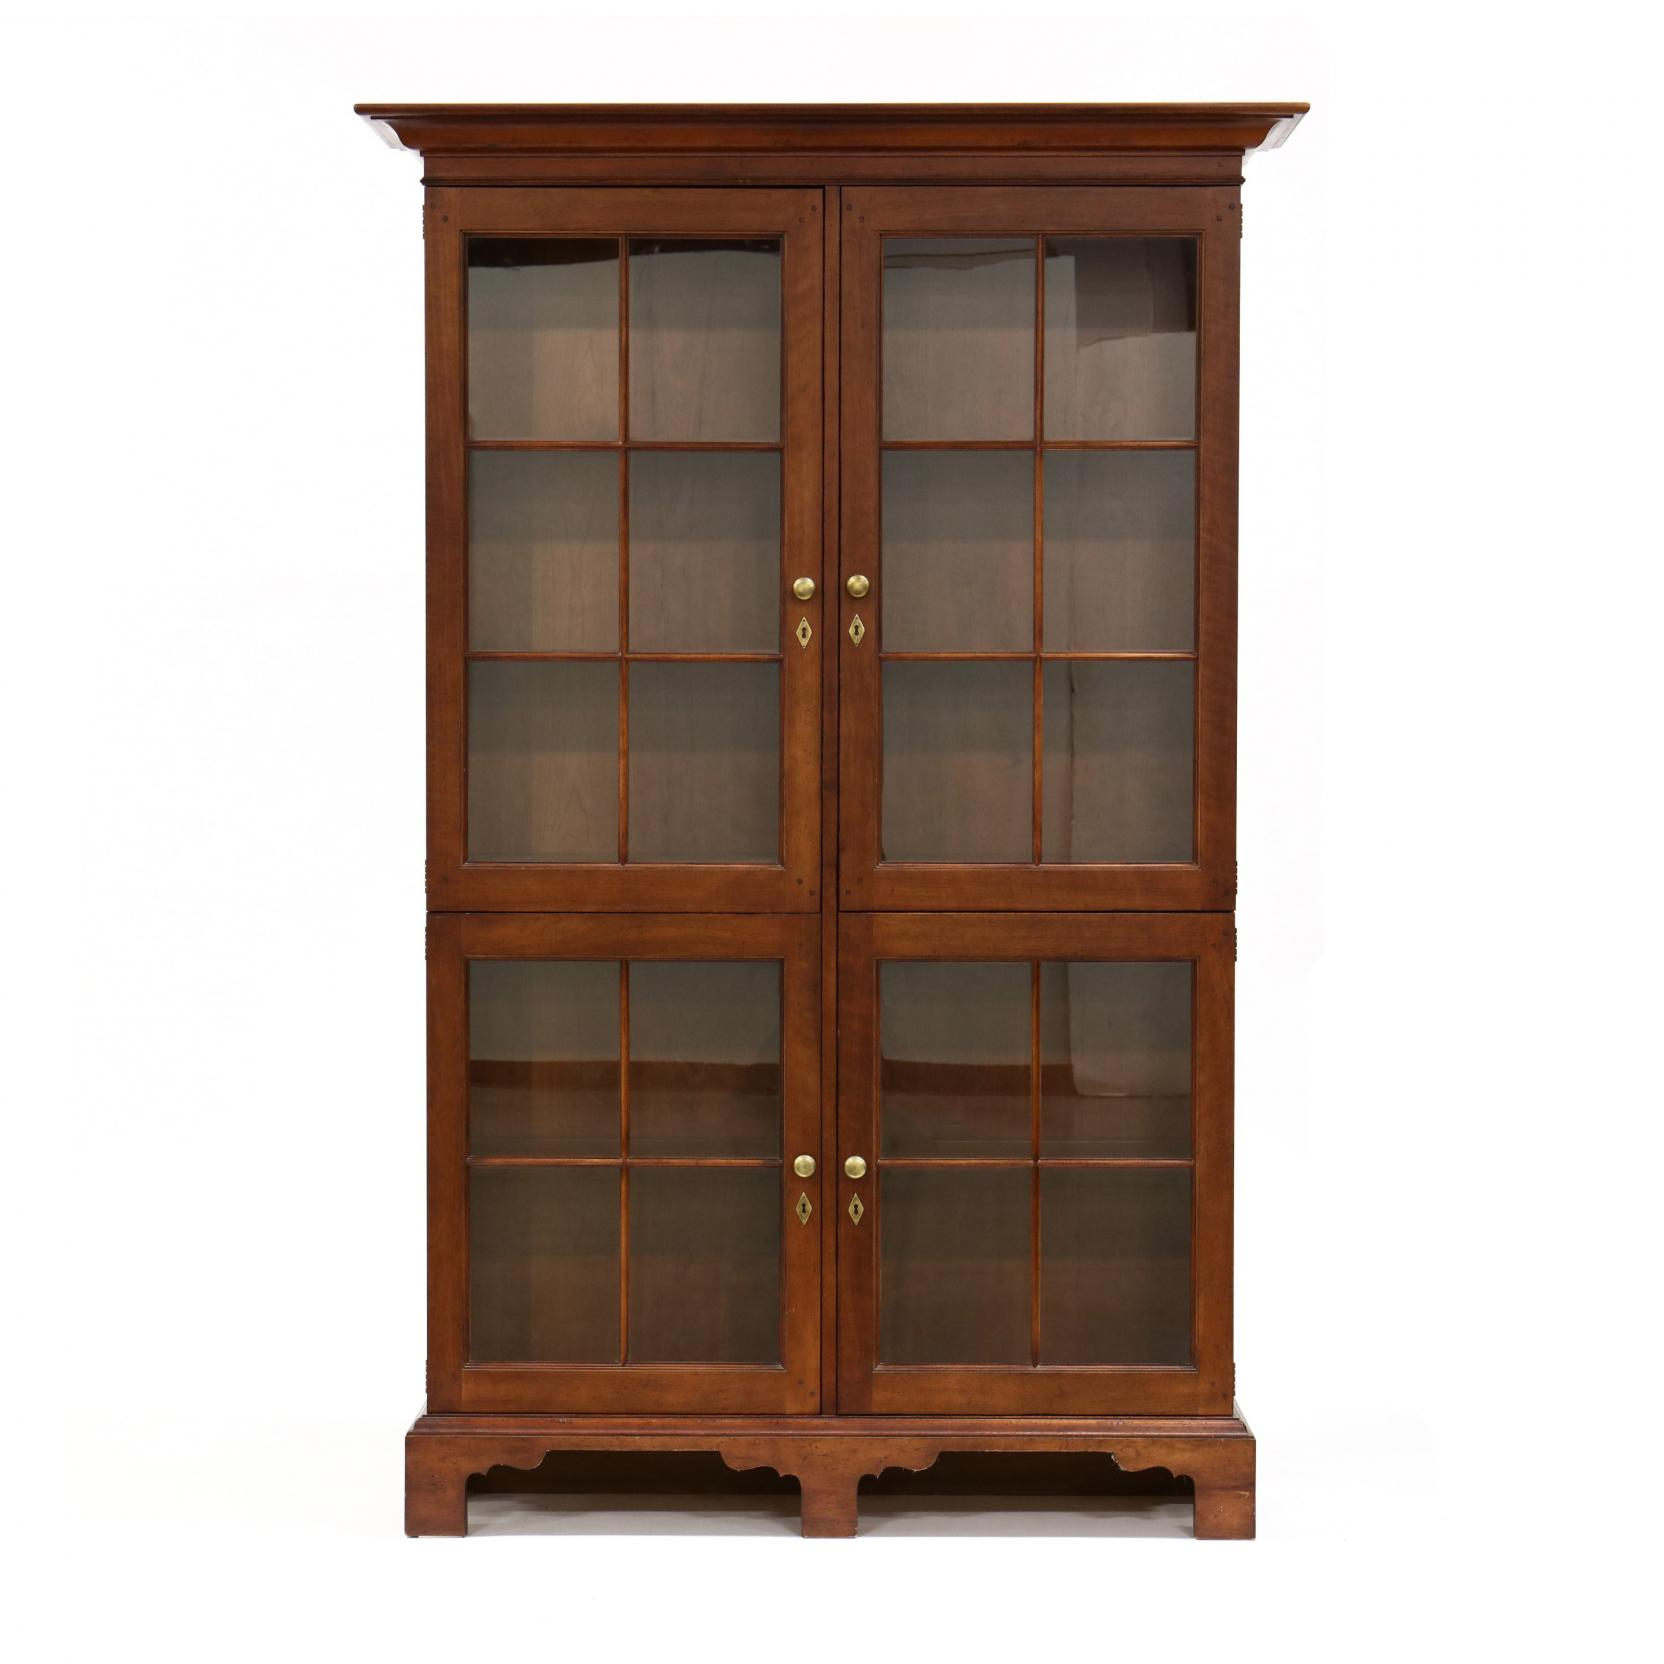 milling-road-by-baker-chippendale-style-flat-wall-display-cabinet